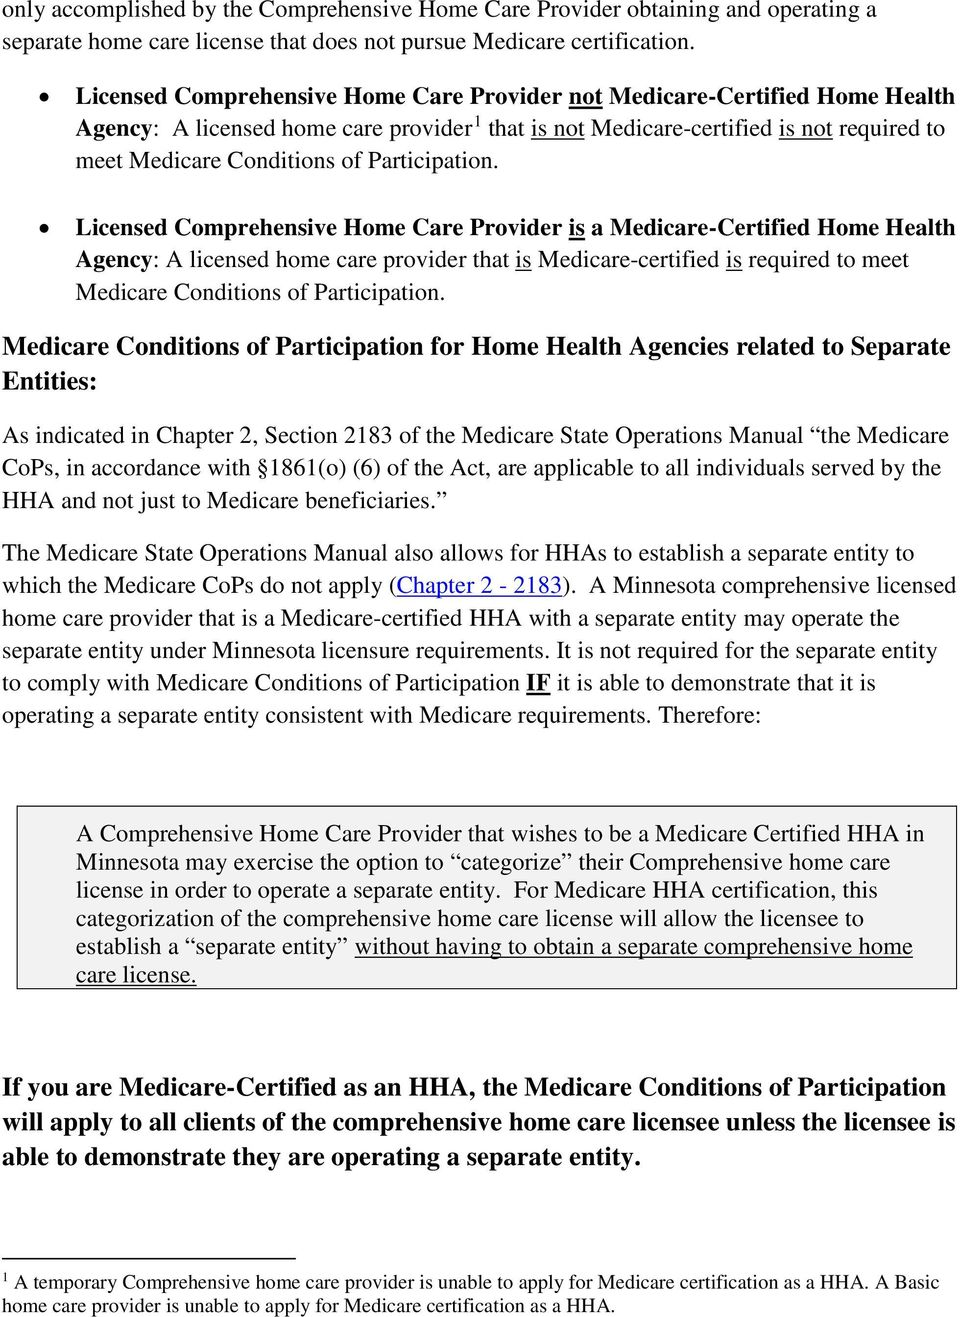 Protecting Maintaining And Improving The Health Of Minnesotans Pdf